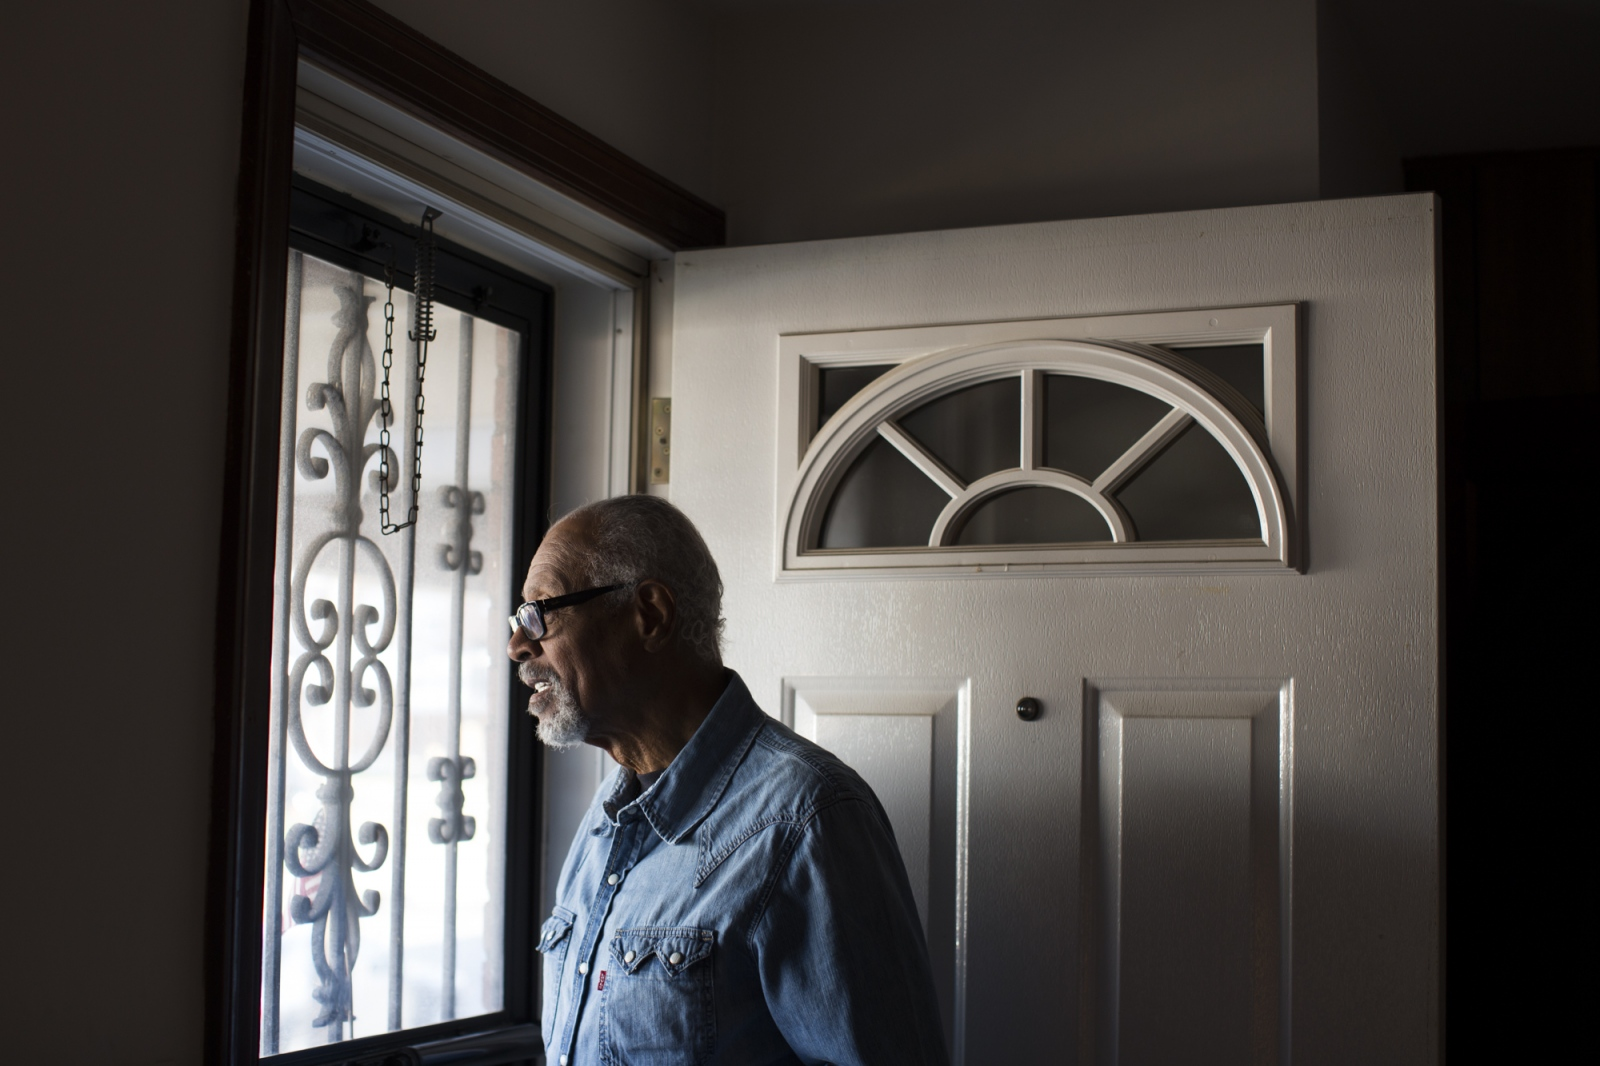 """Mr. Lenny"" - Washington, D.C., December 2015.  Lawrence E. Leonard Sr., 81, looks outside his front porch Friday, Dec. 4, 2015. Leonard has been a resident of Fairlawn in Ward 8 in Washington, D.C. for 41 years. Leonard watched over many of the children on the block during his early years as a resident and was affectionately named ""Mr. Lenny."""